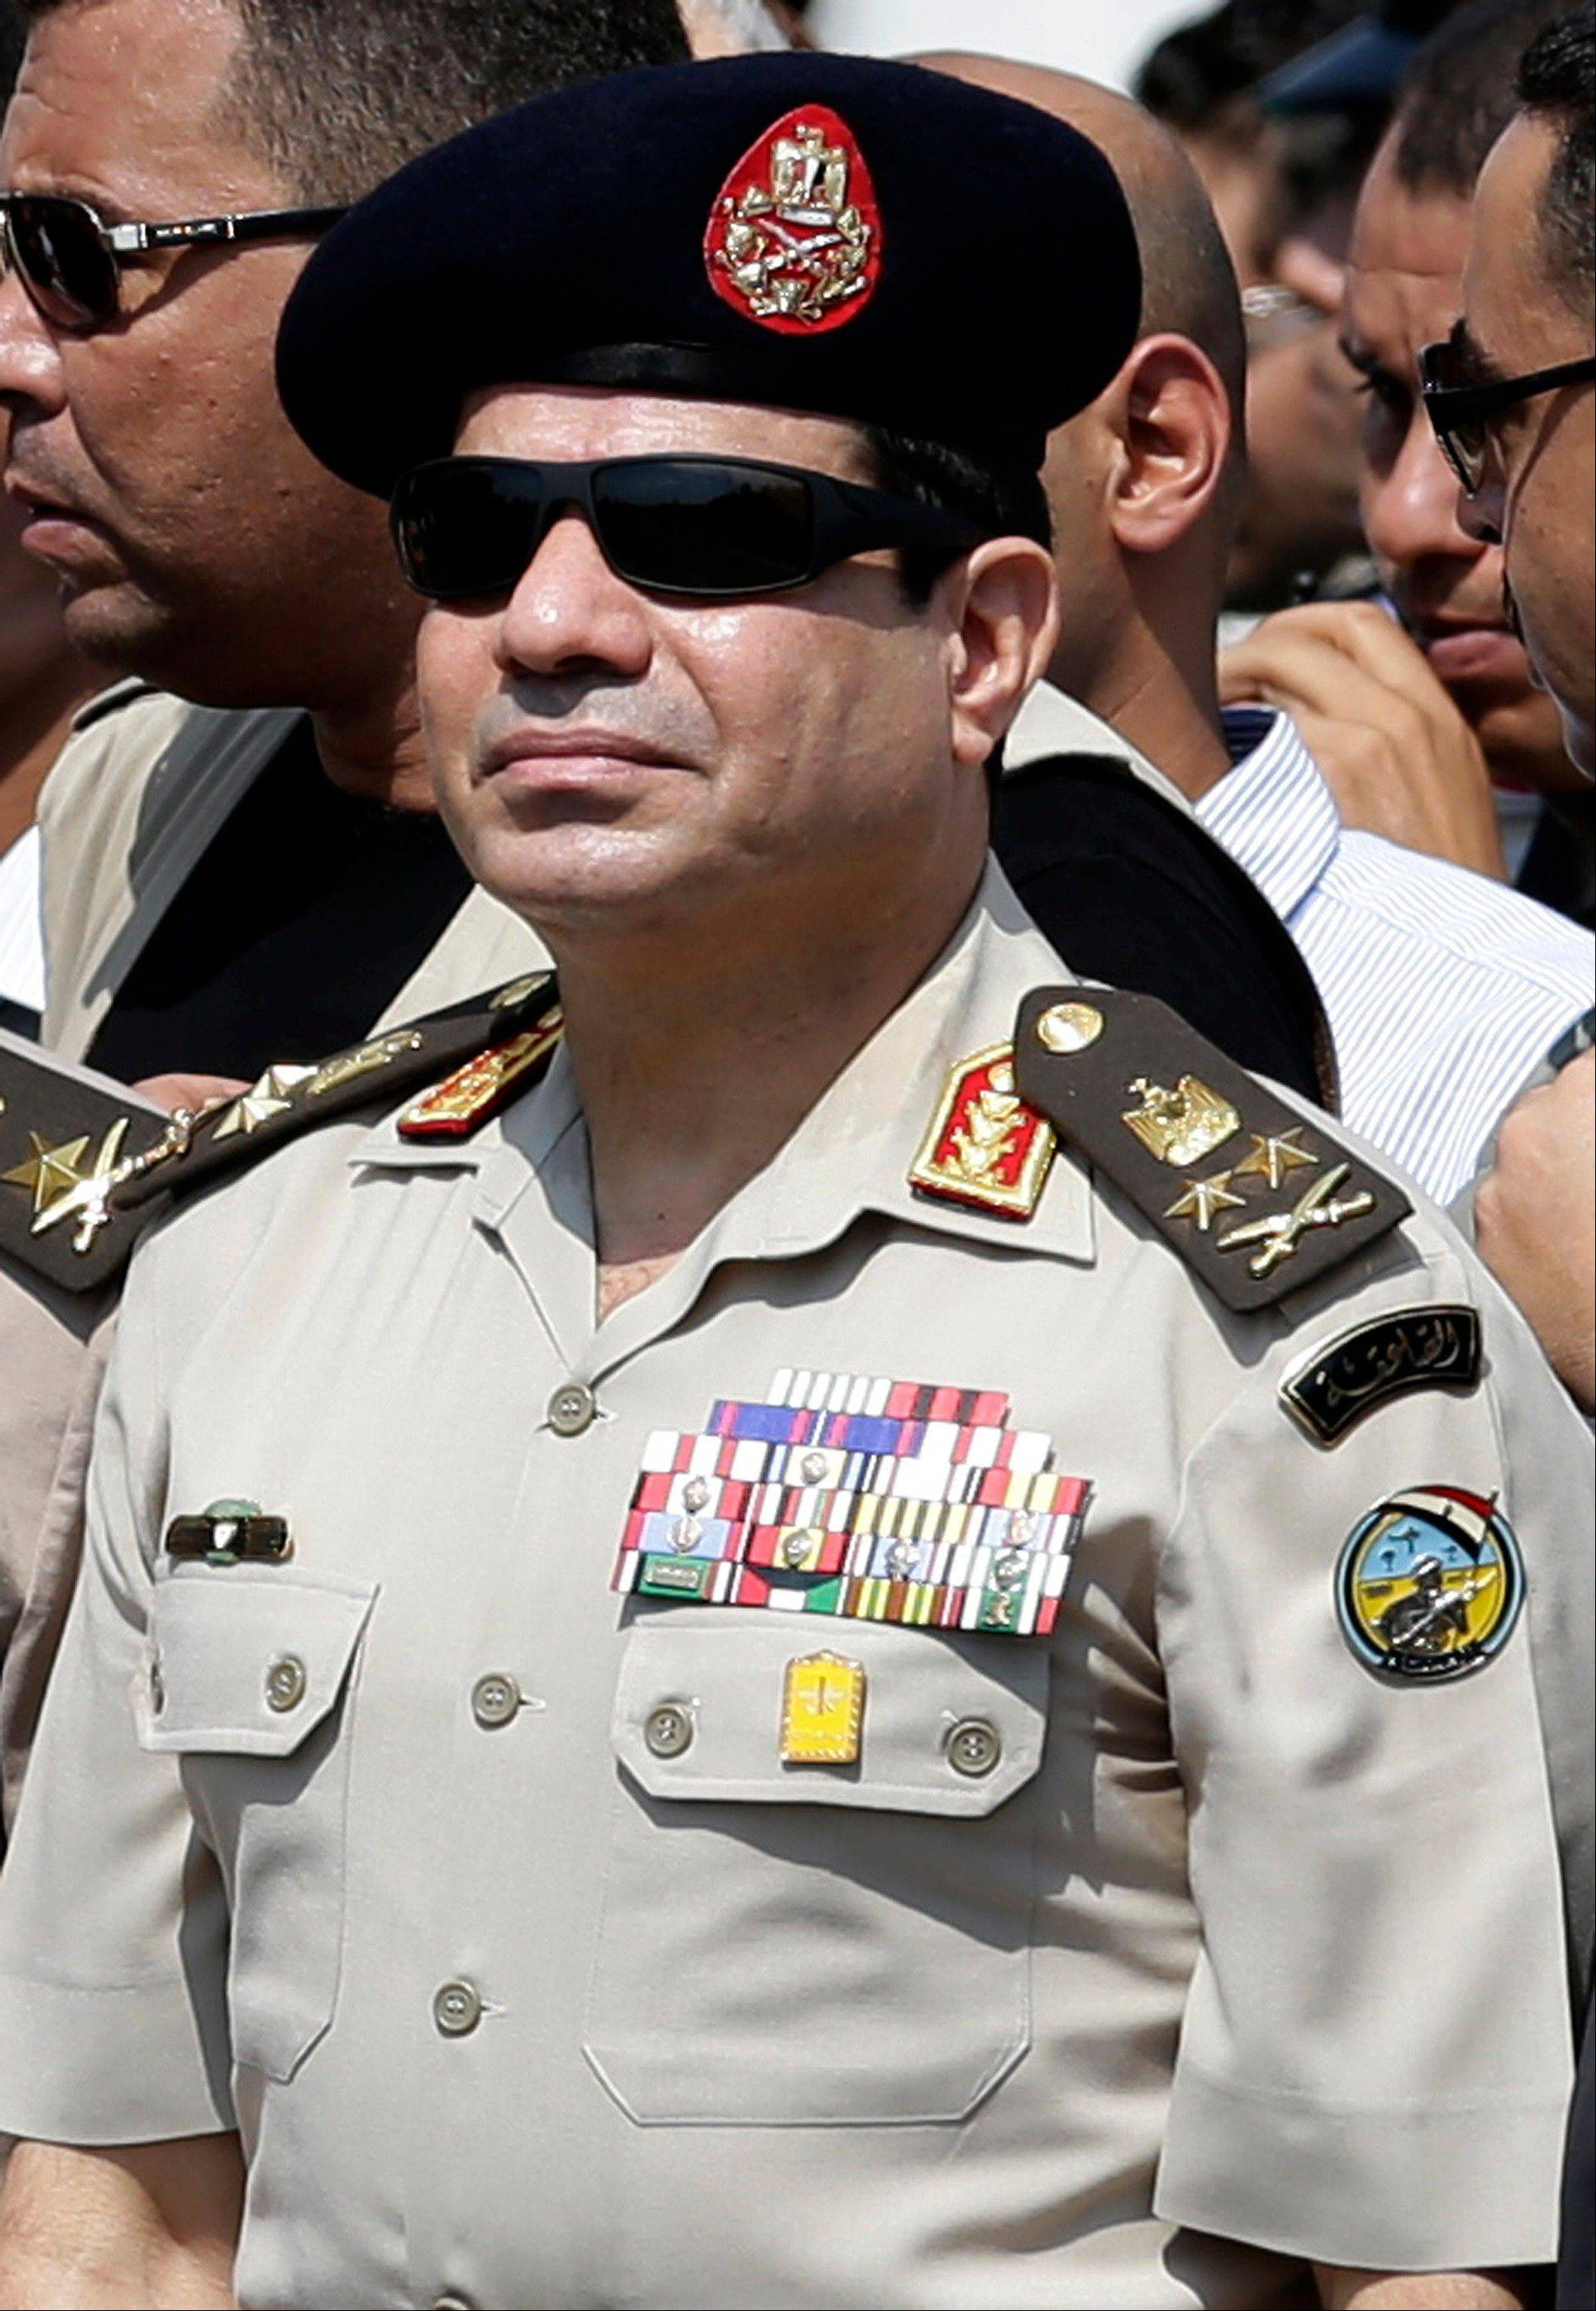 Egypt�s Defense Minister Gen. Abdel-Fattah el-Sissi attends the funeral of Giza Police Gen. Nabil Farrag in Cairo, Egypt, Friday.